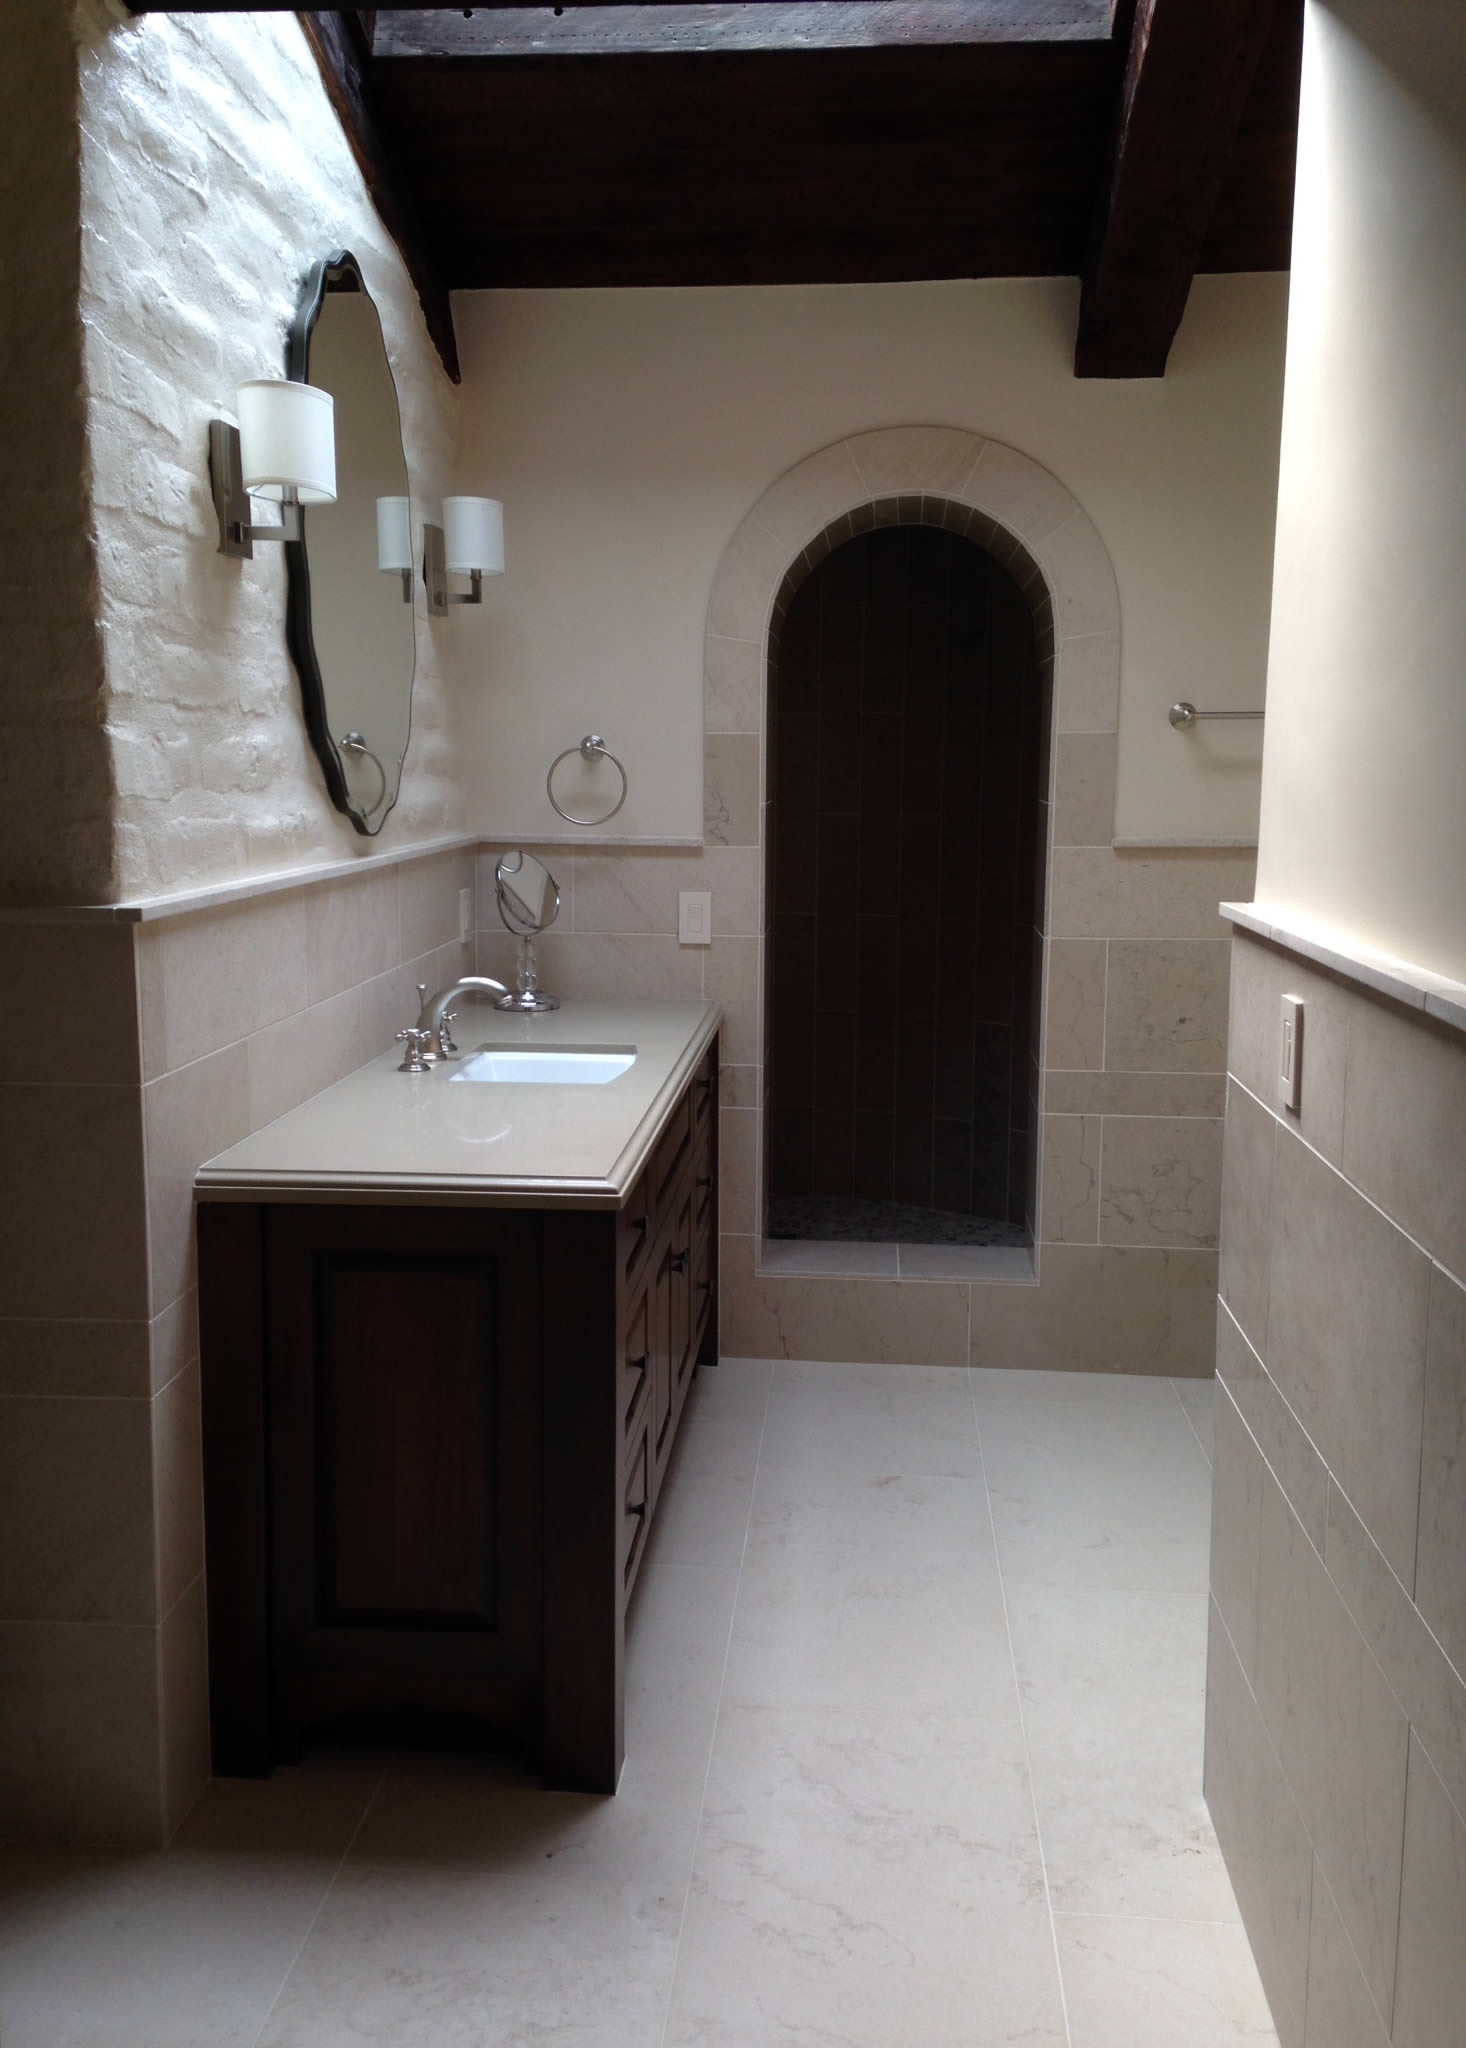 Stone and tile remodels by Michelangelo Enterprises, San Diego, California